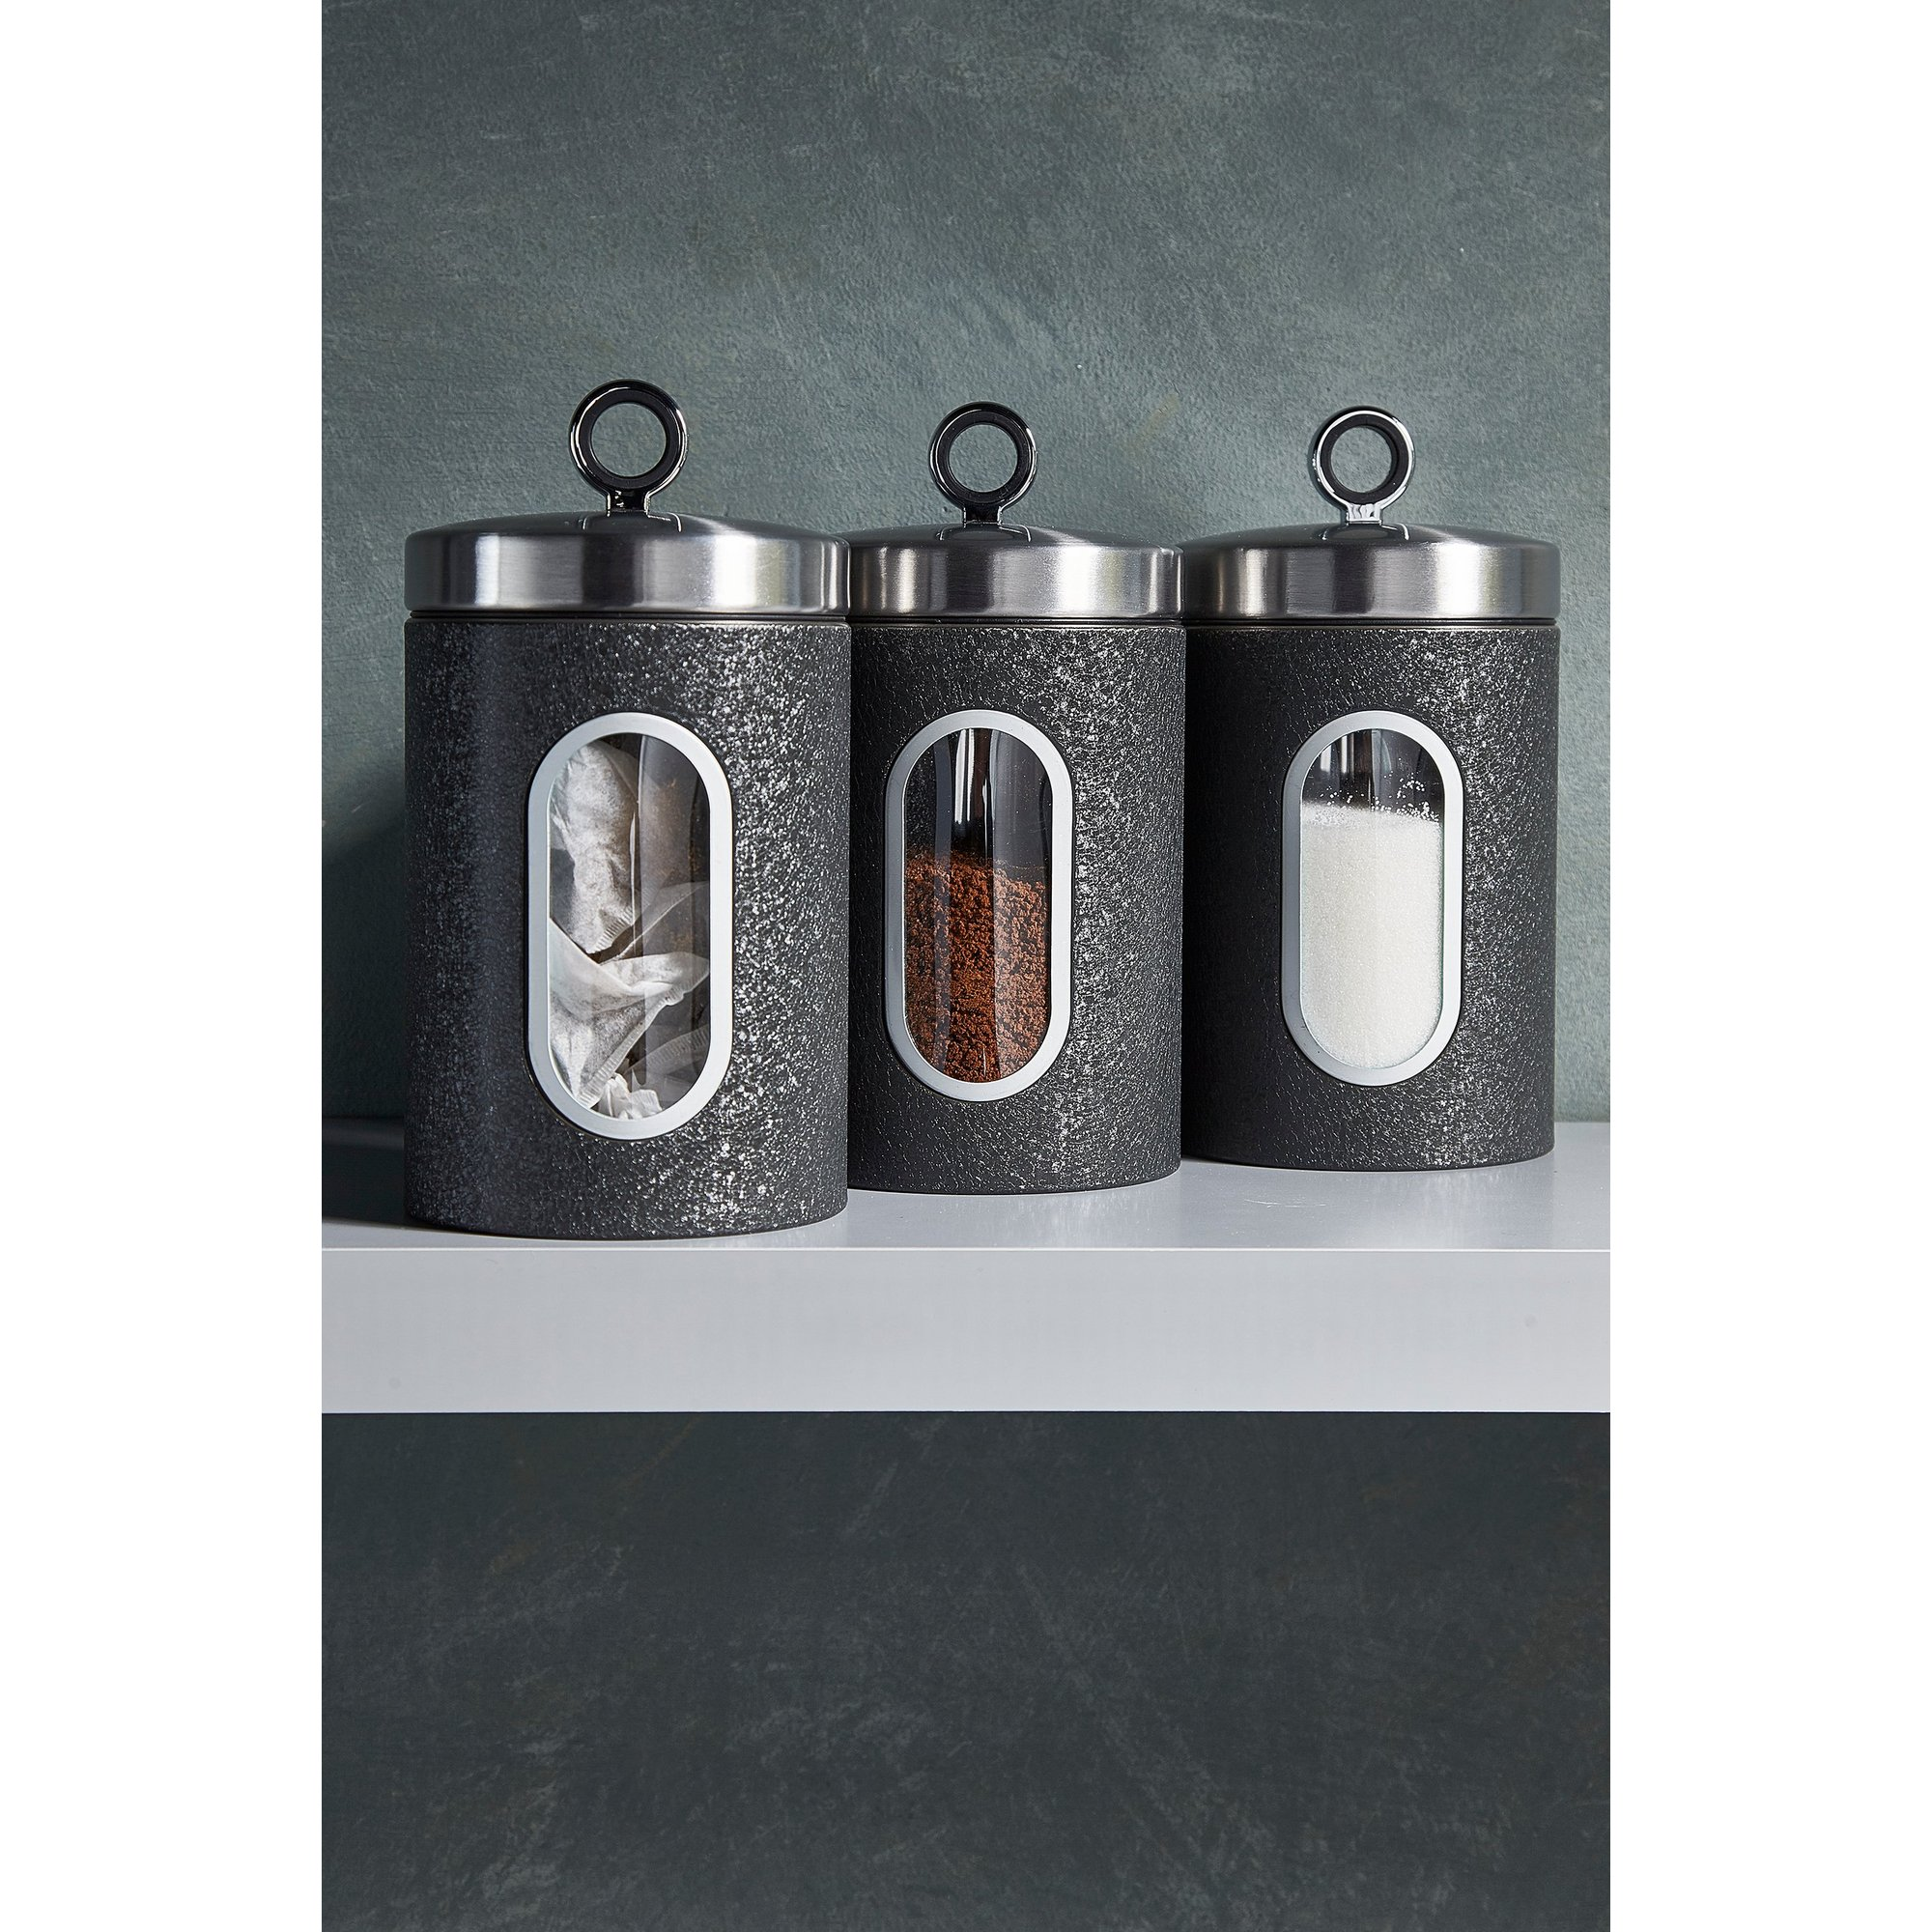 Image of Daewoo Glace Noir Set of 3 Canisters